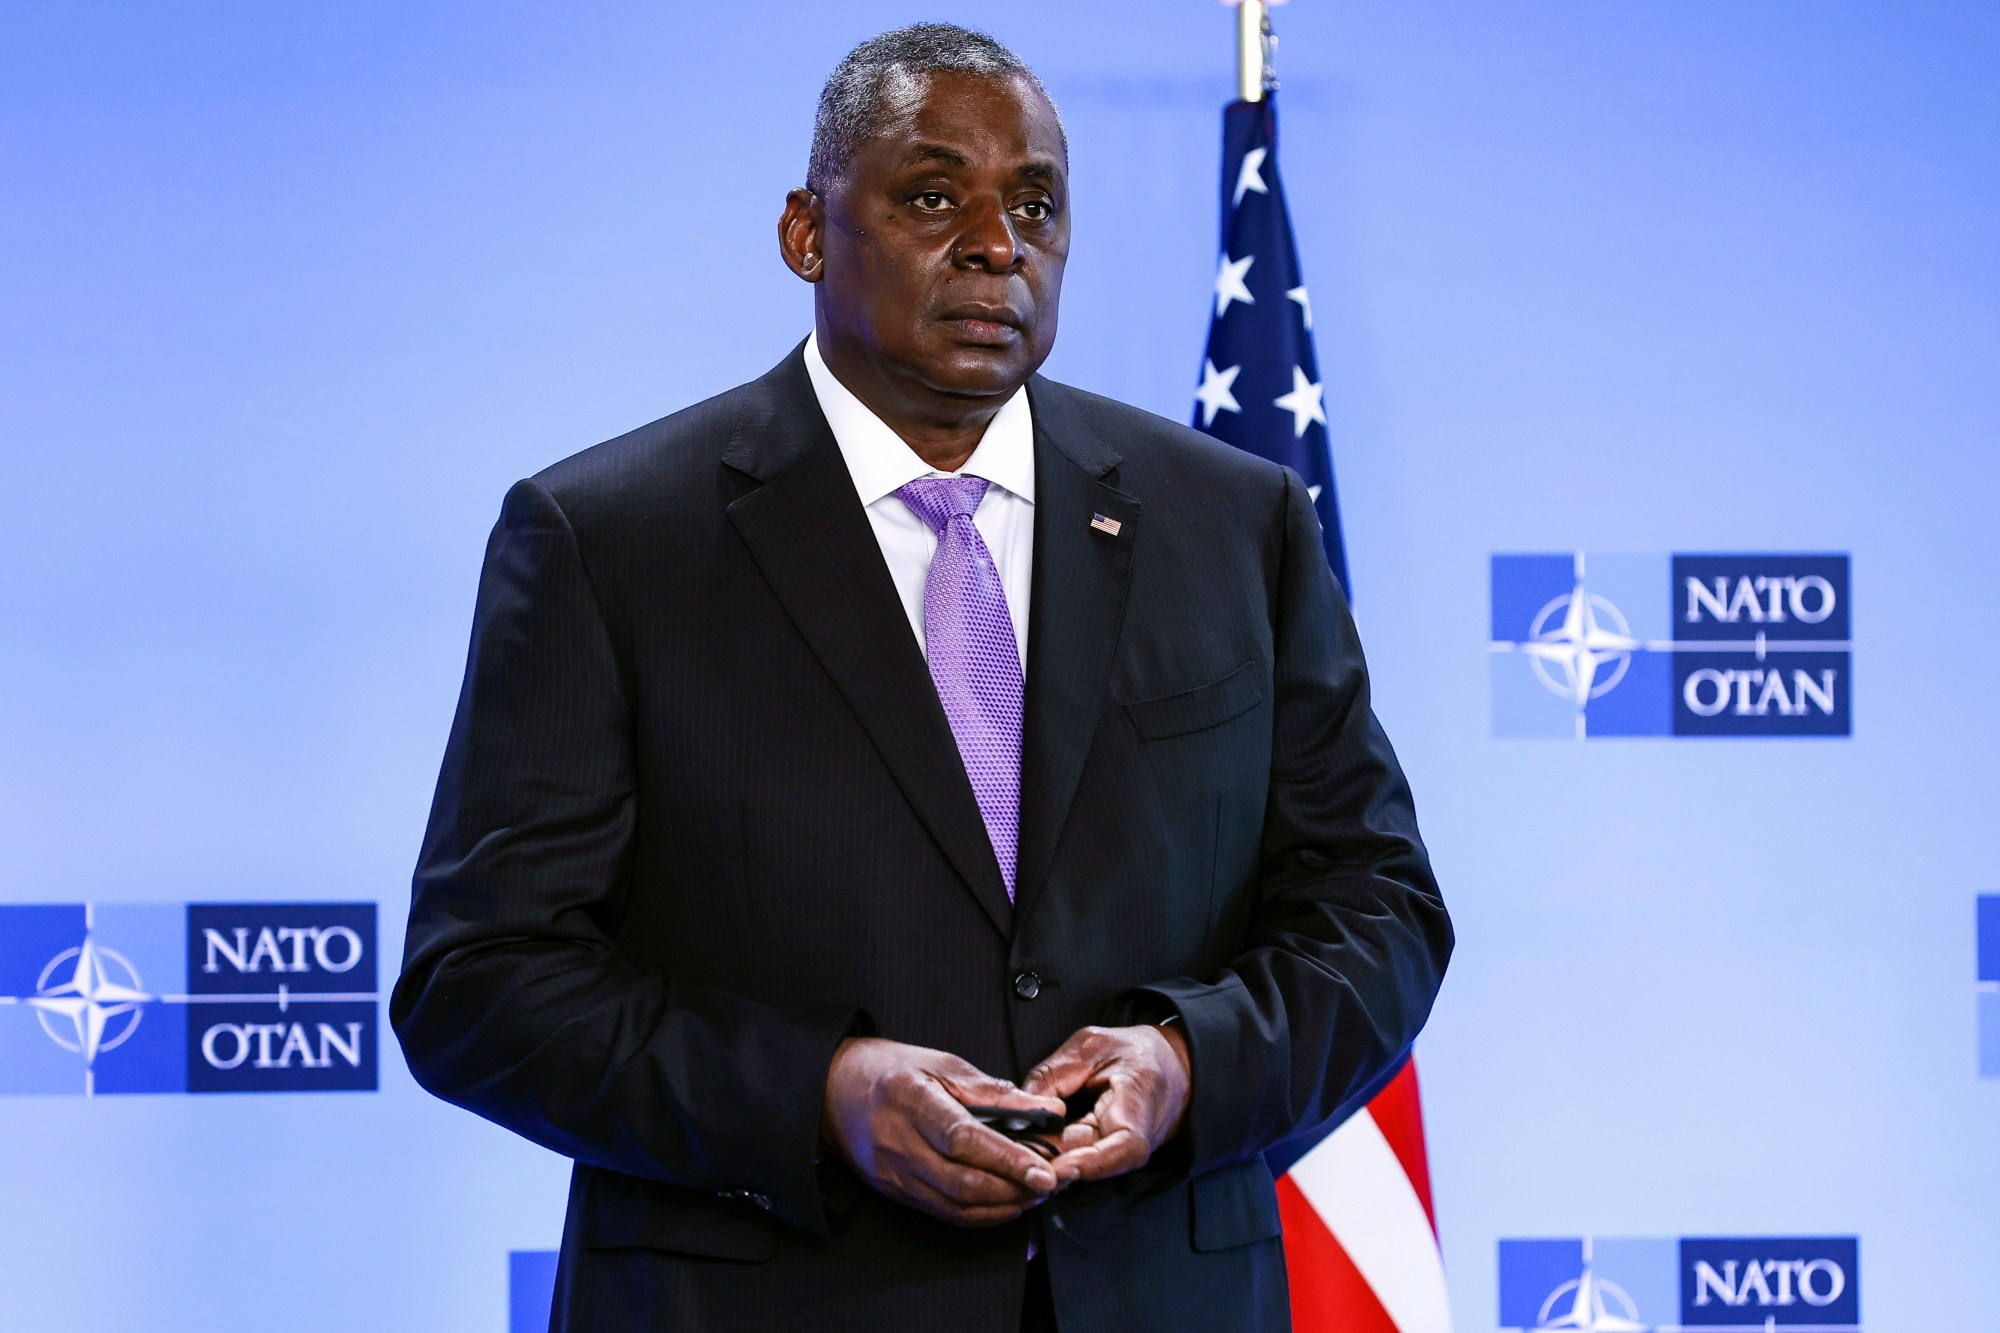 In this April 14, 2021, file photo, Secretary of Defense Lloyd Austin poses for photographers as he arrives at NATO headquarters in Brussels. The Associated Press has learned that a Pentagon panel is recommending that decisions to prosecute service members for sexual assault be made by independent authorities, not commanders. It would be a major reversal of military practice and a change long sought by Congress members. (Kenzo Tribouillard, Pool via AP)